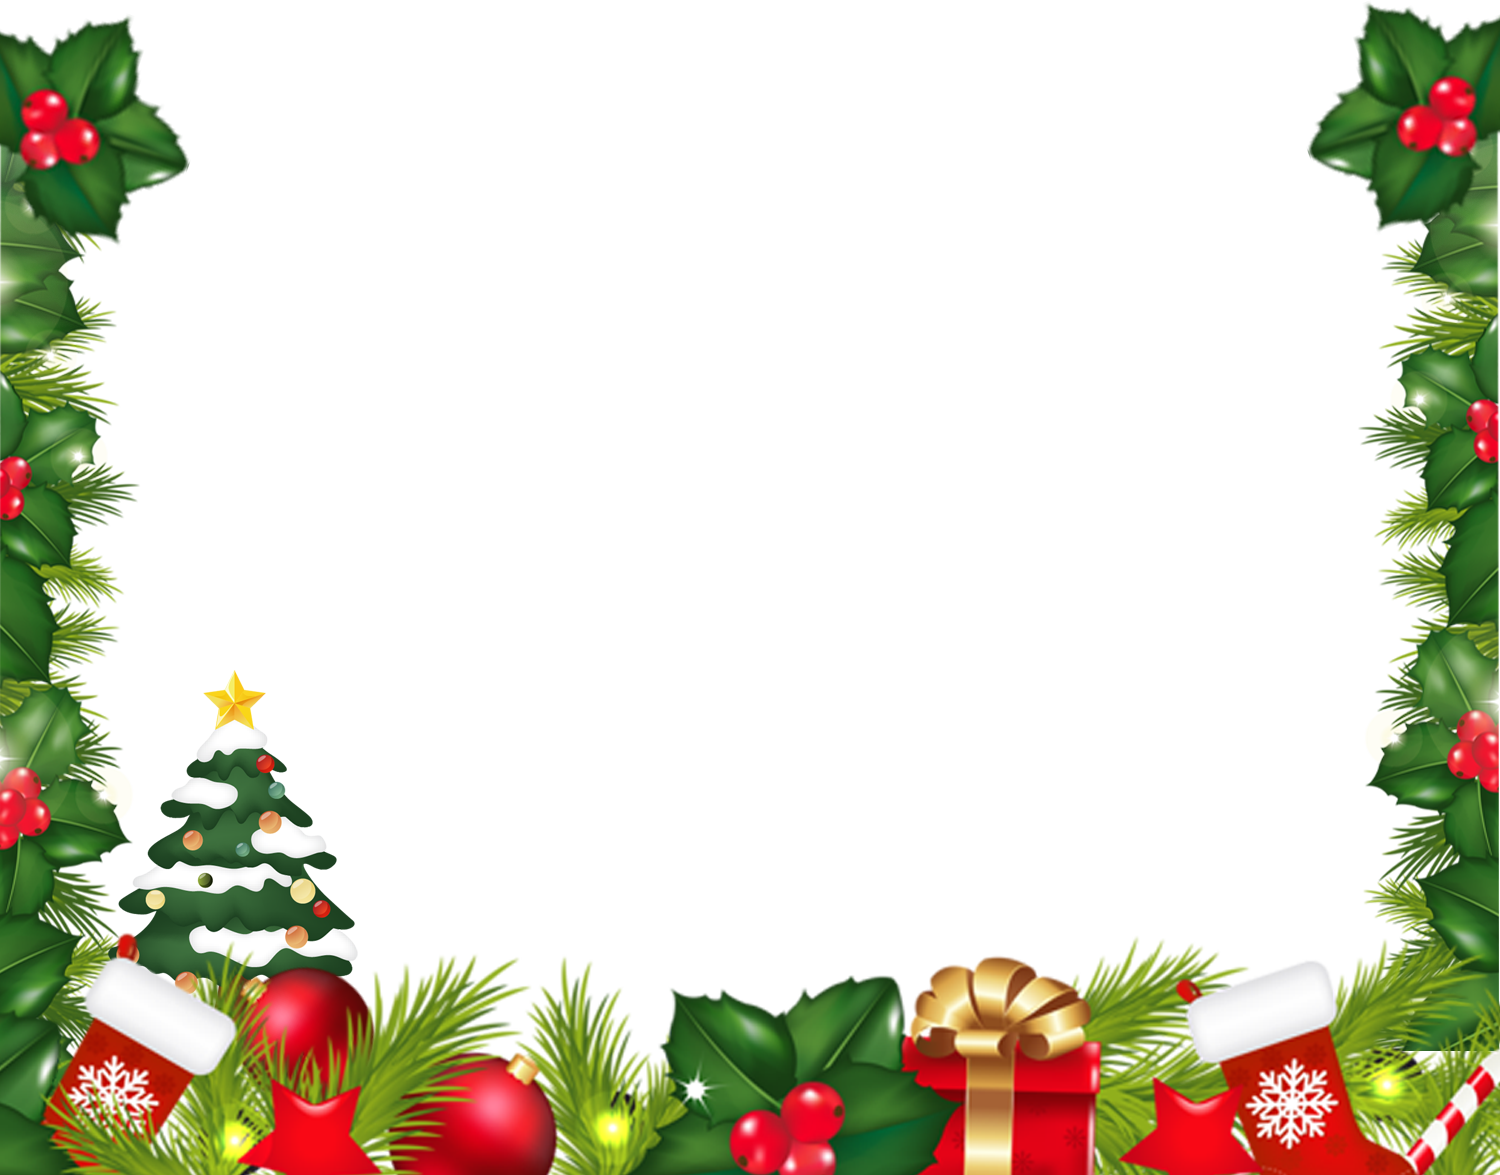 Christmas Background PNG Image Free Download searchpng.com.